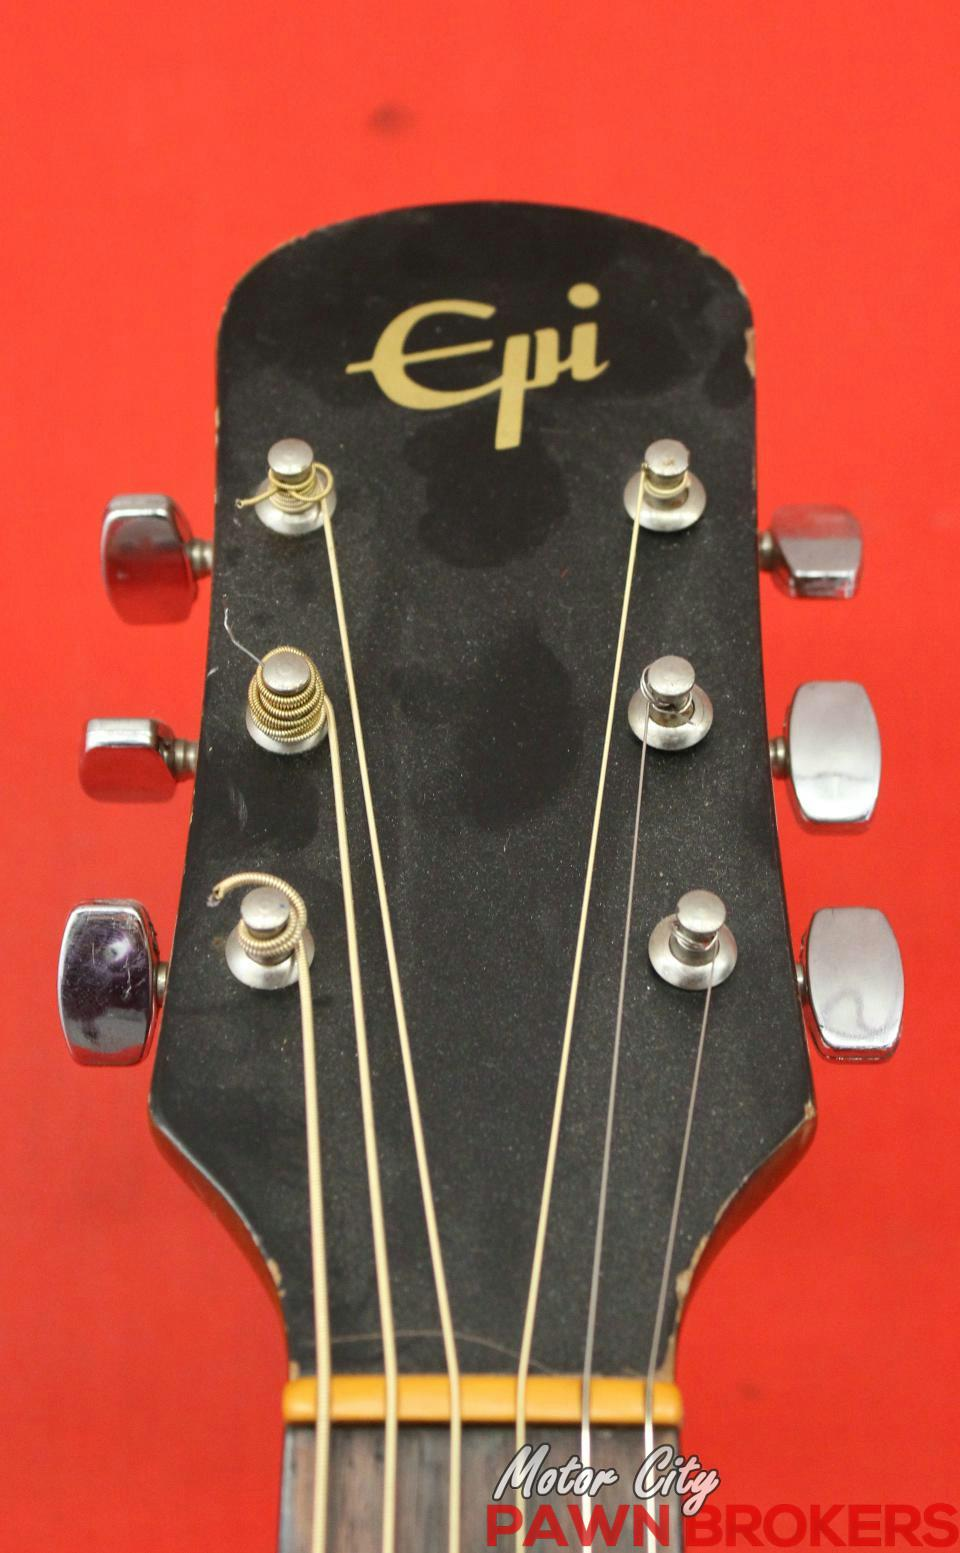 Epiphone ed 100 6 string right handed mahogany for Motor city pawn brokers roseville mi